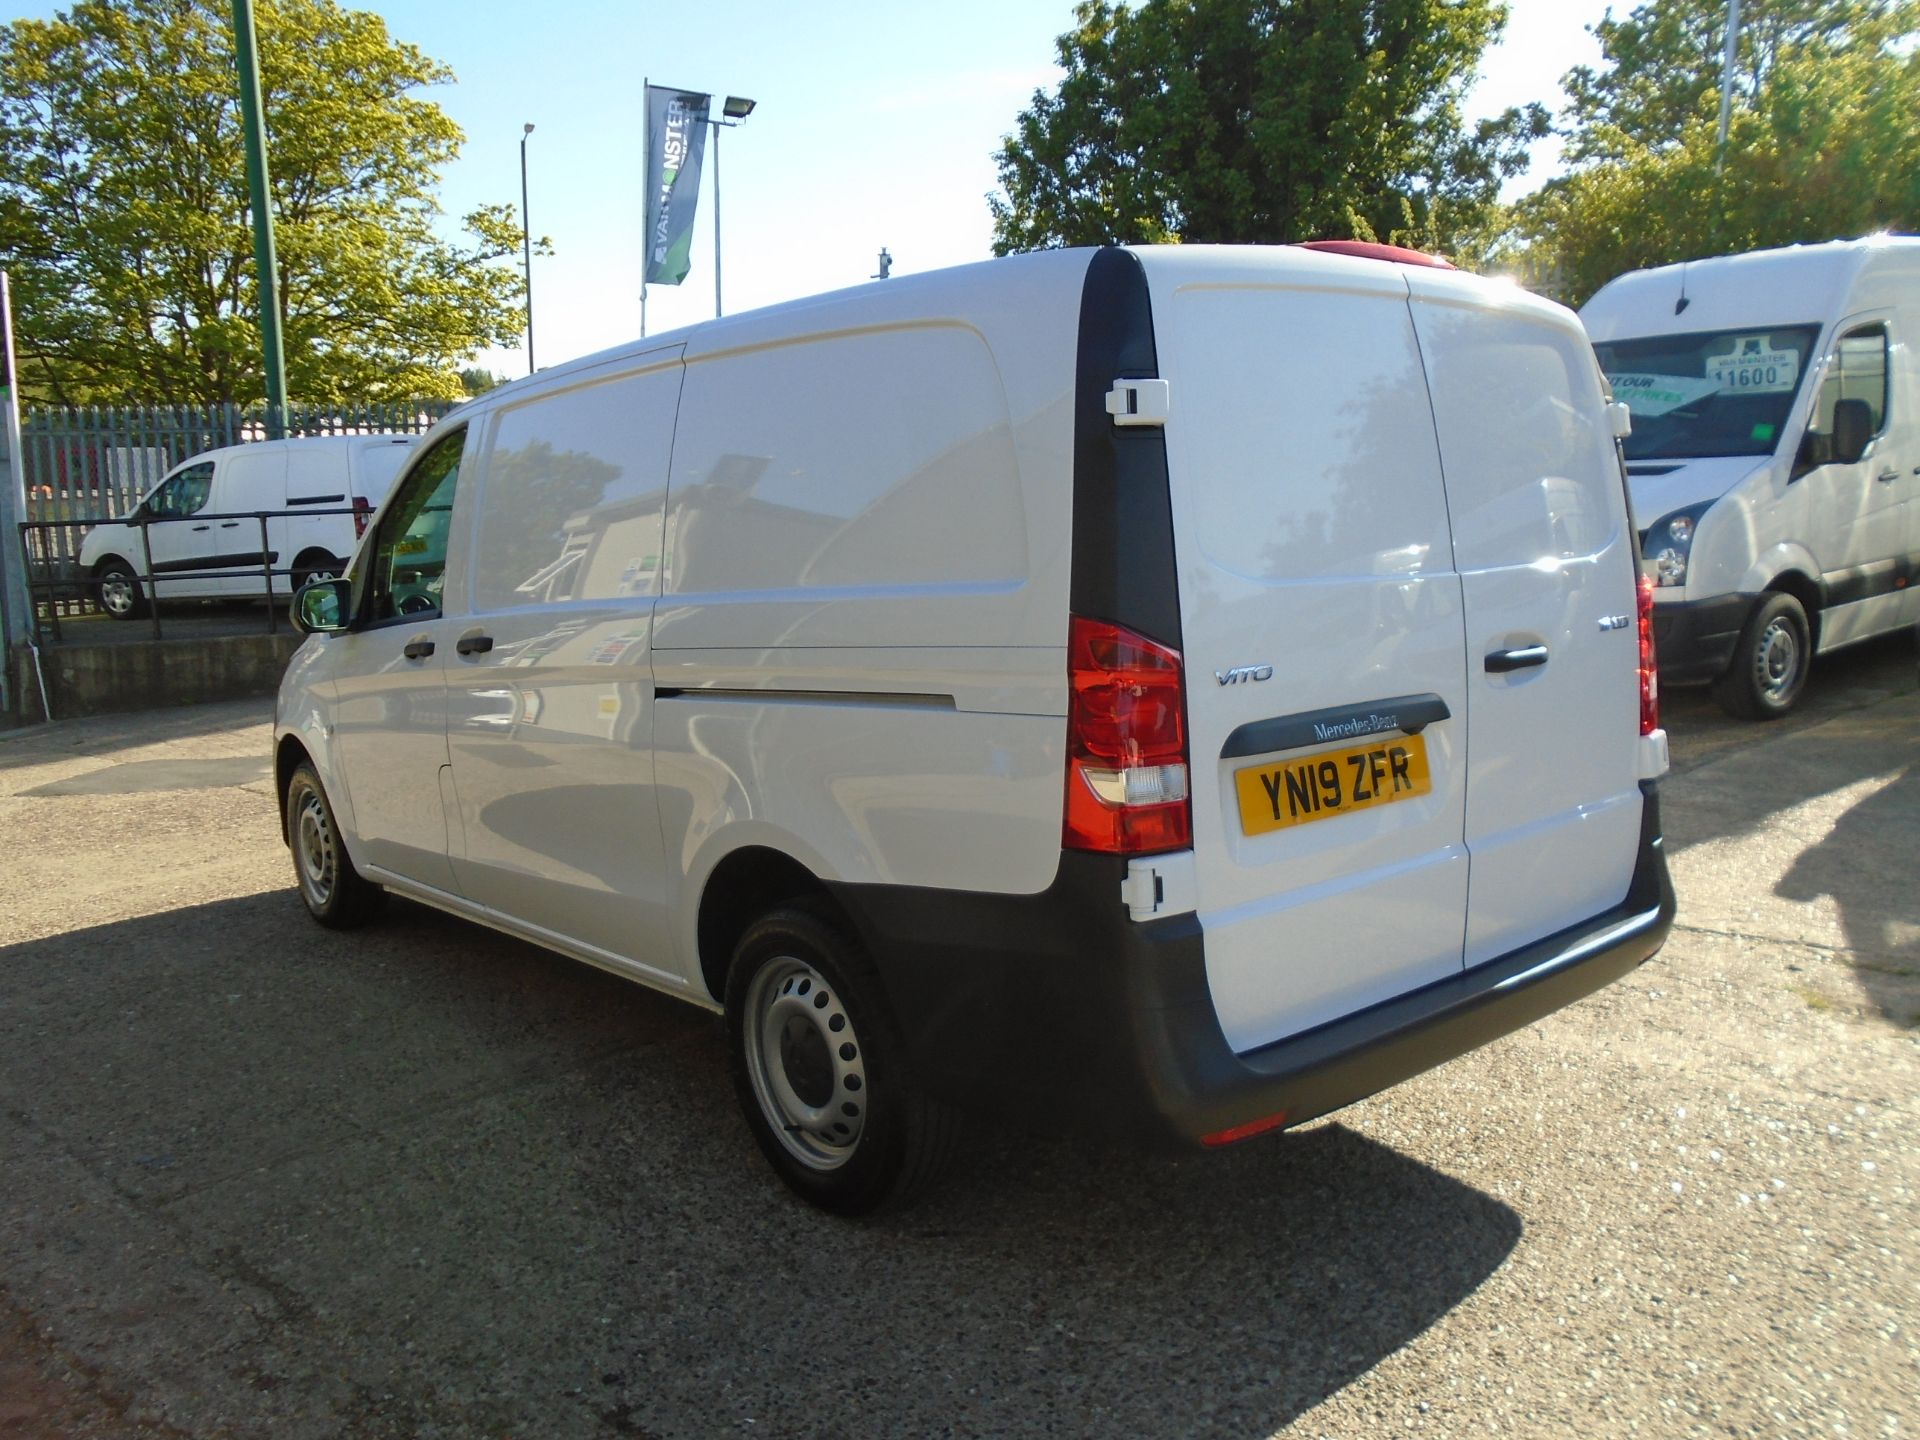 2019 Mercedes-Benz Vito  111Cdi Van Euro 6 Massive specification A/C Air Con, Delivery Miles Only (YN19ZFR) Image 4